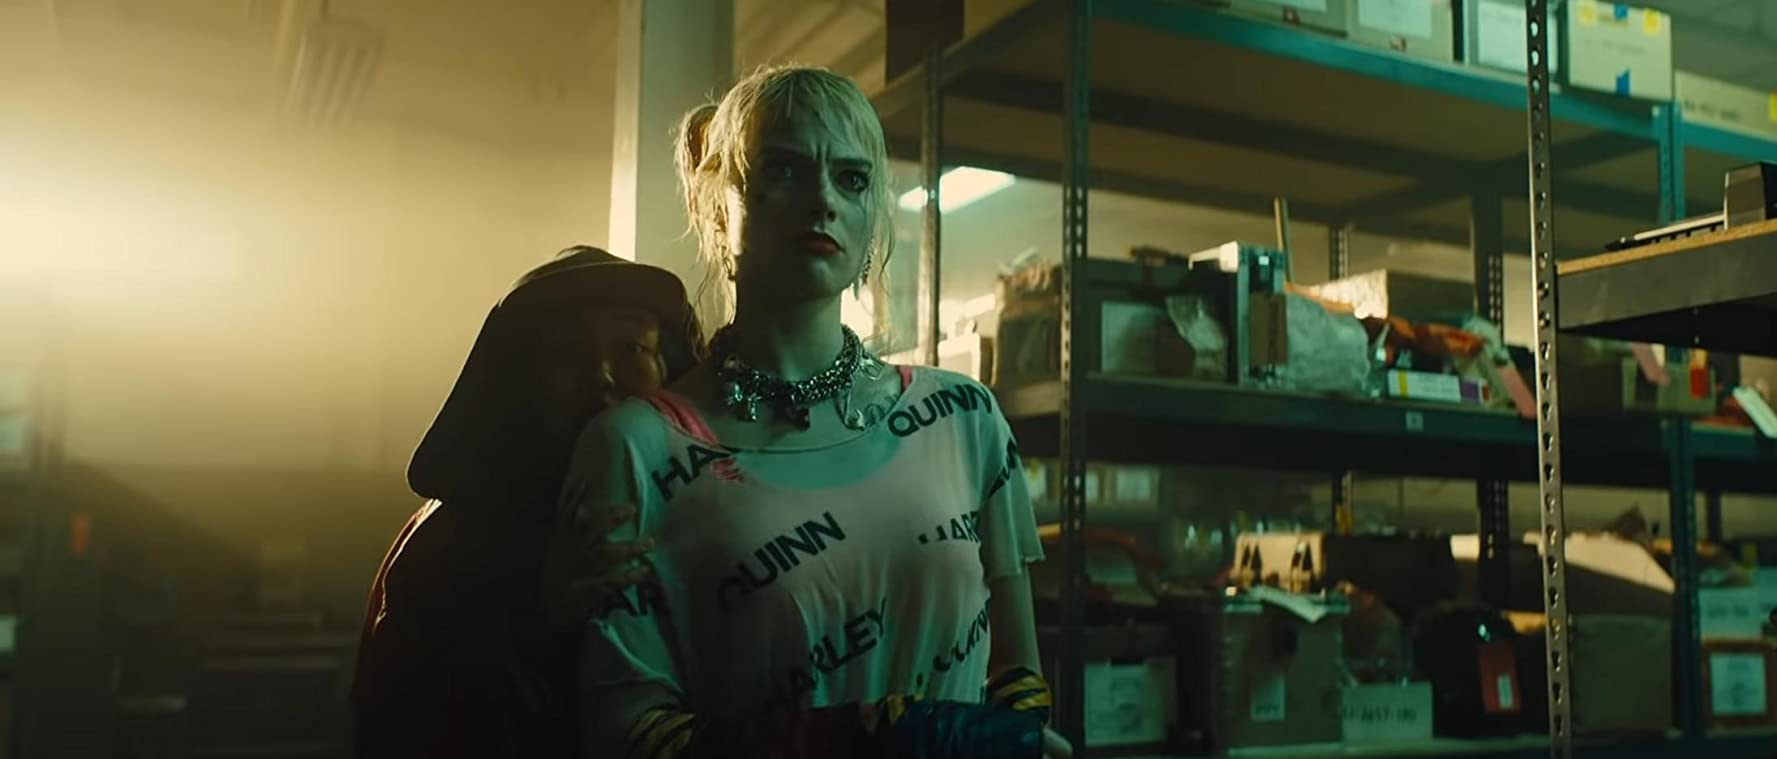 Margot Robbie and Ali Wong in Birds of Prey: And the Fantabulous Emancipation of One Harley Quinn (2020)